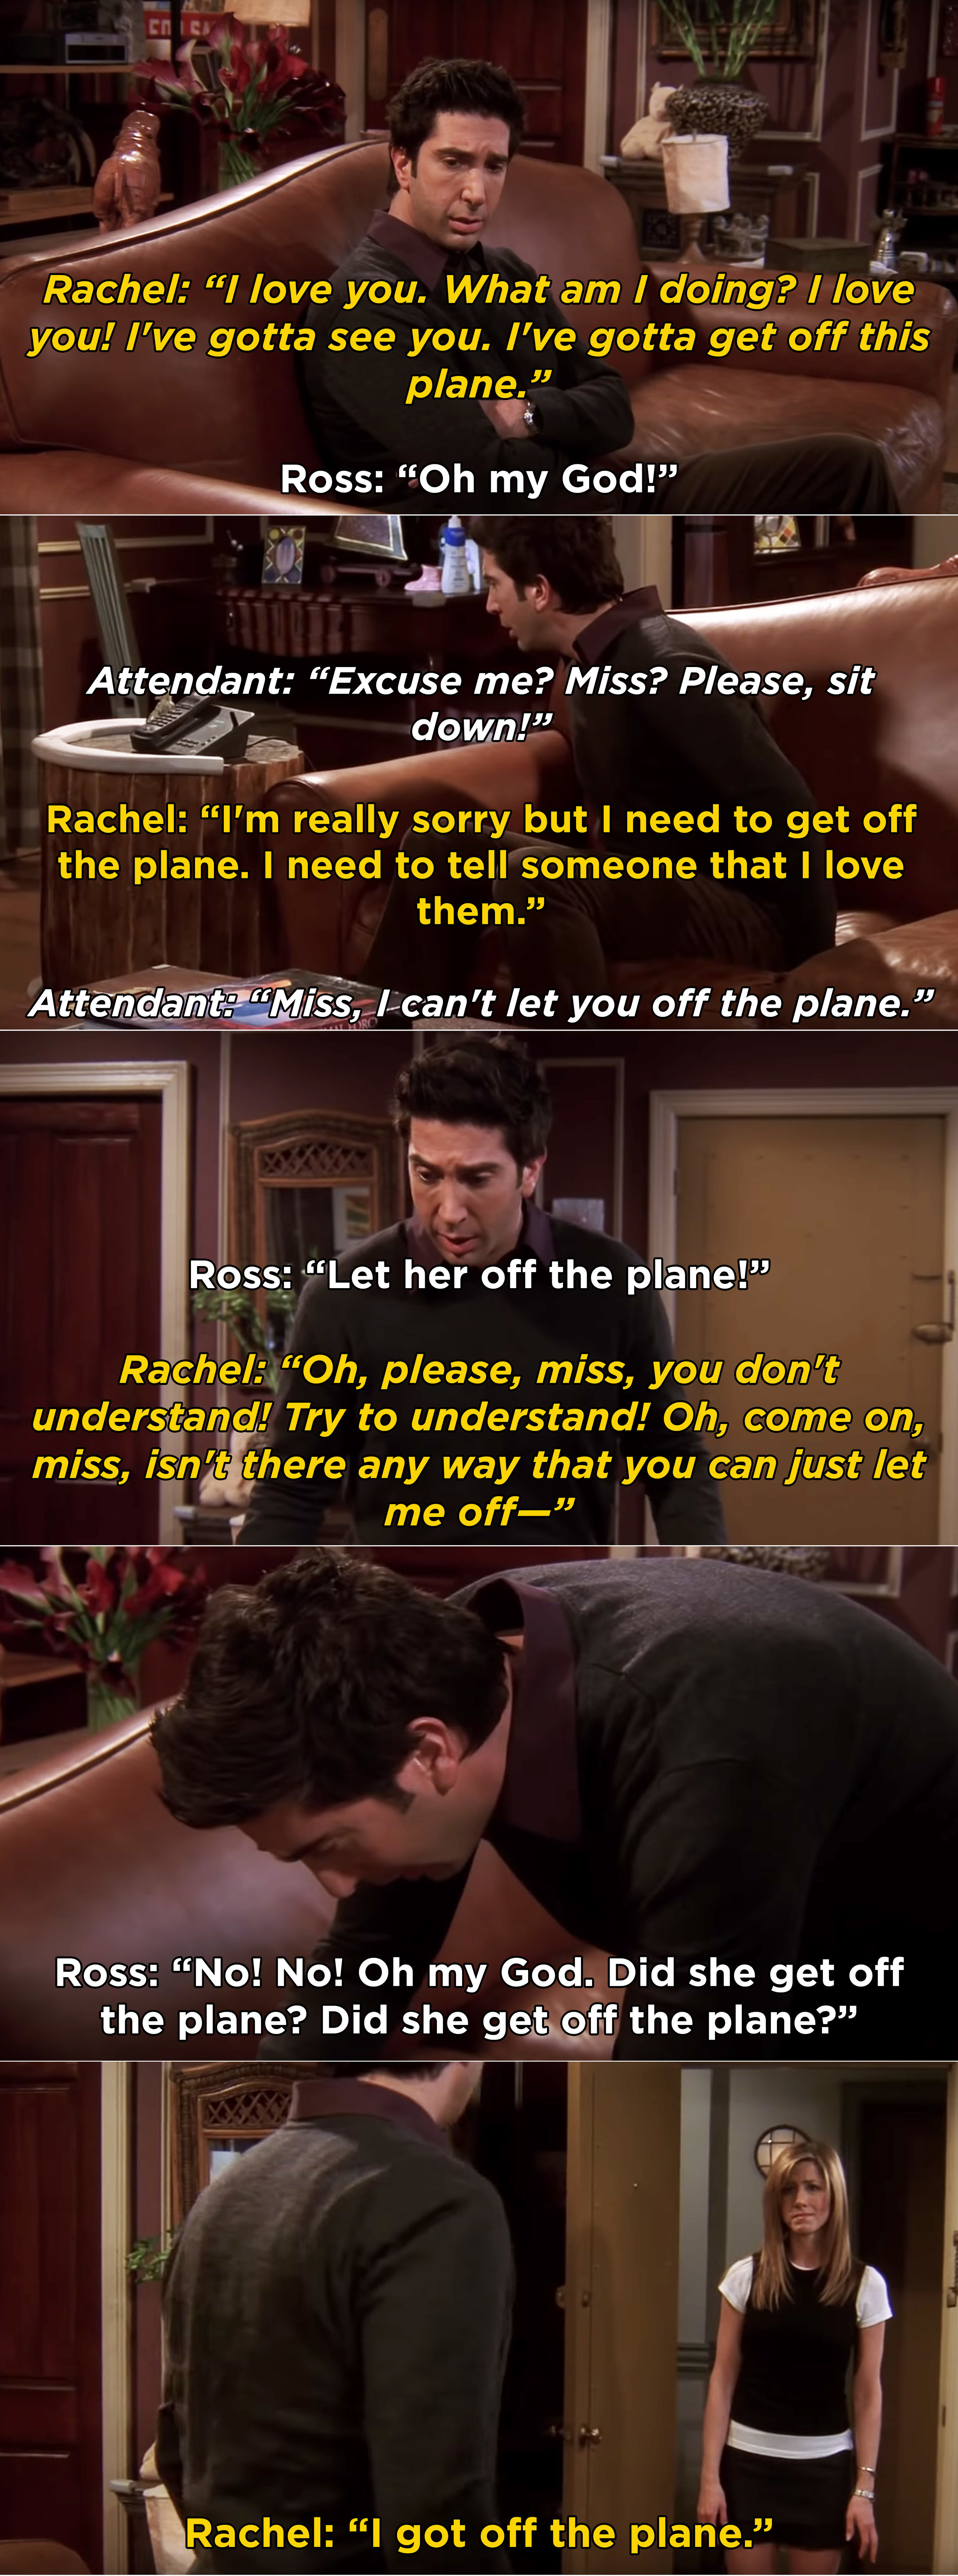 Ross finding out that Rachel actually got off the plane